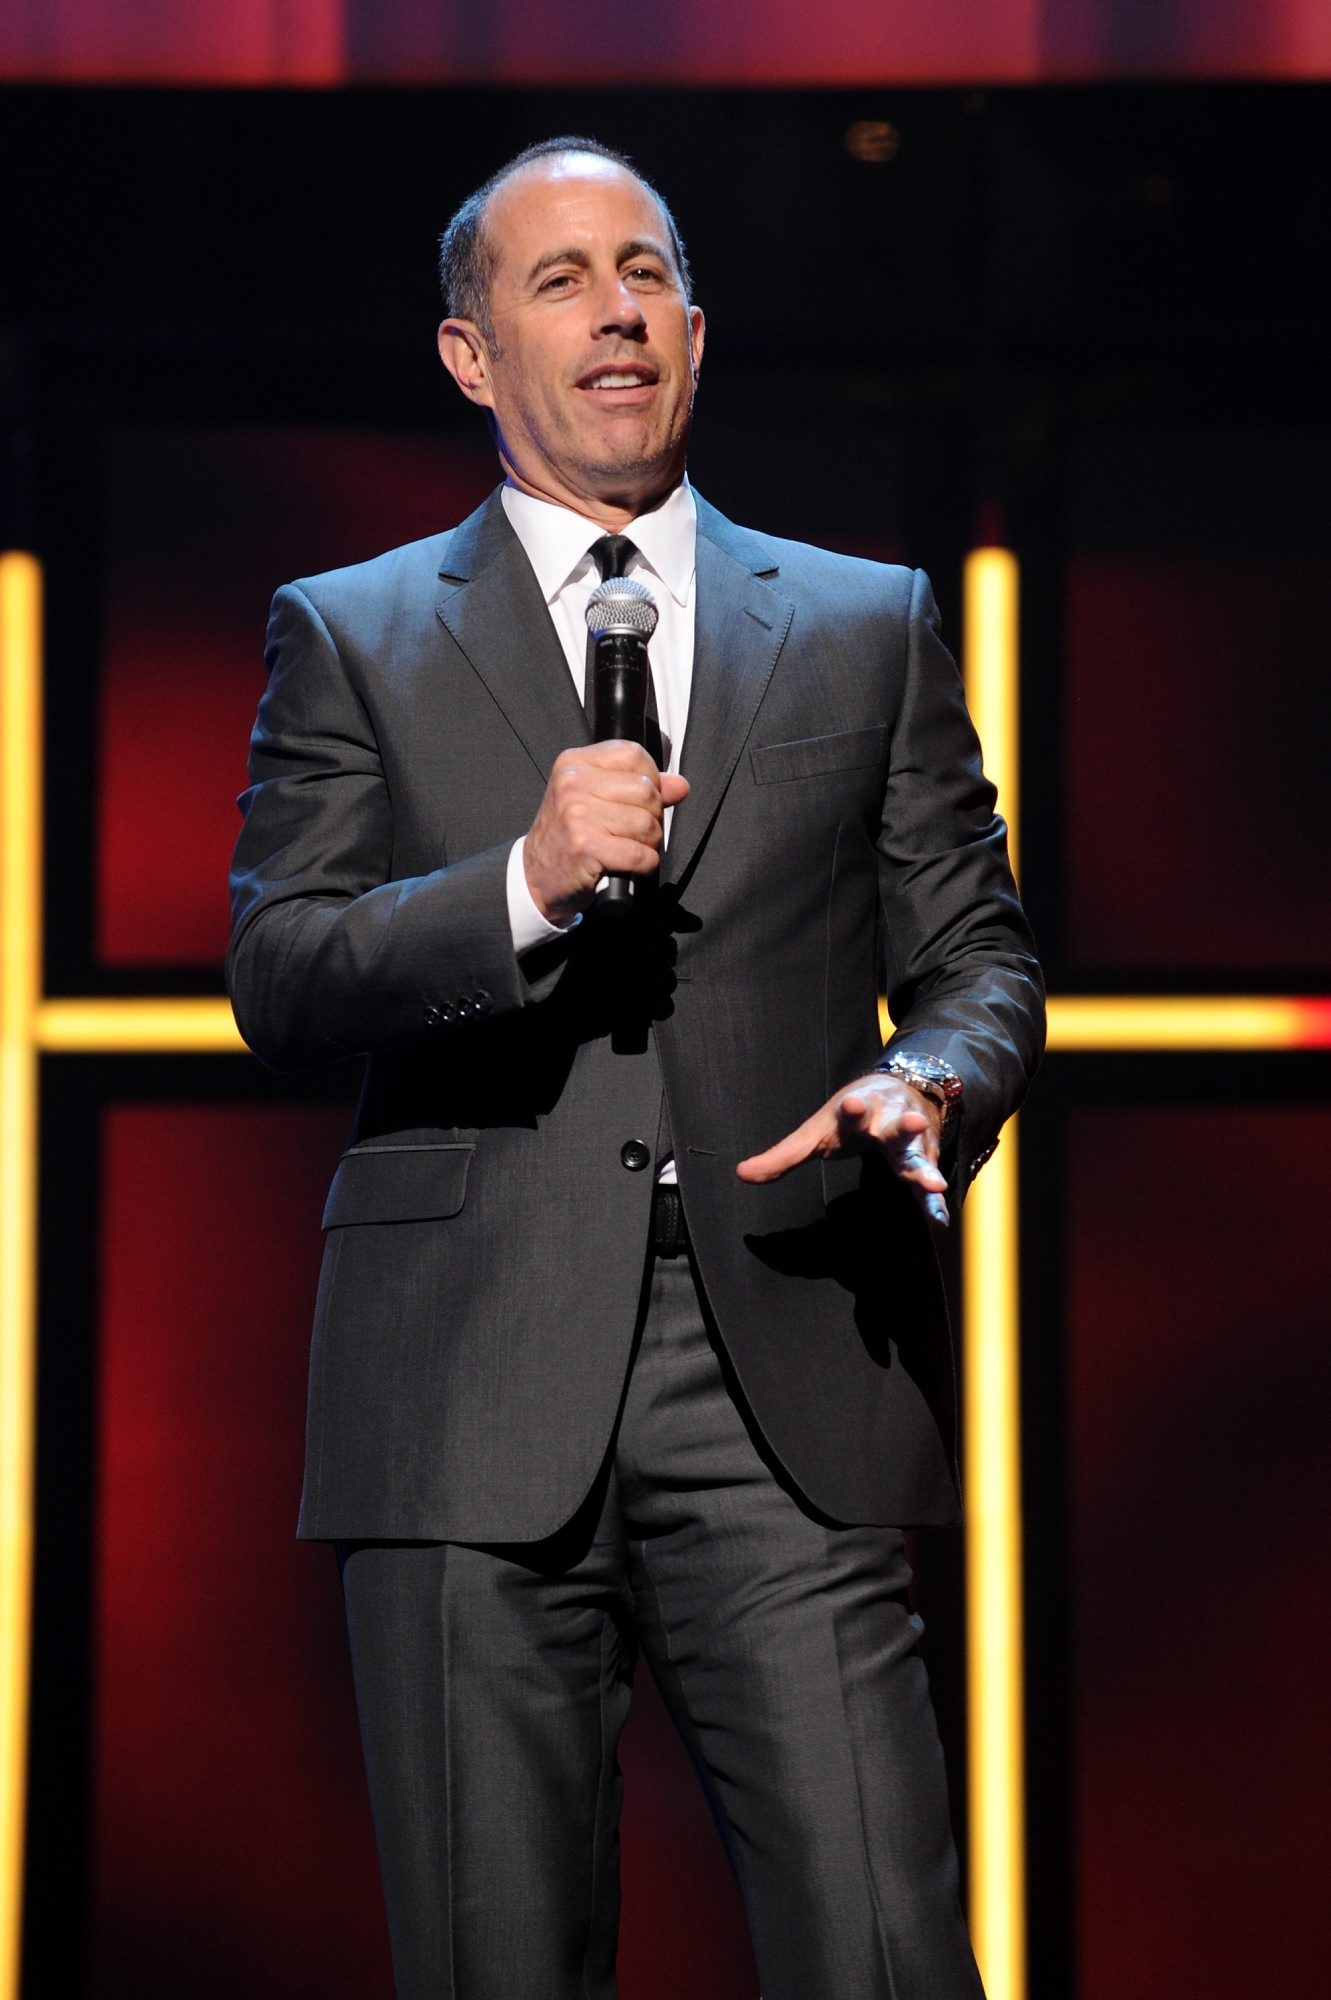 NEW YORK, NY - APRIL 29:  Jerry Seinfeld speaks onstage at the 2015 Hulu Upfront Presentation at Hammerstein Ballroom on April 29, 2015 in New York City.  (Photo by Craig Barritt/Getty Images for Hulu)